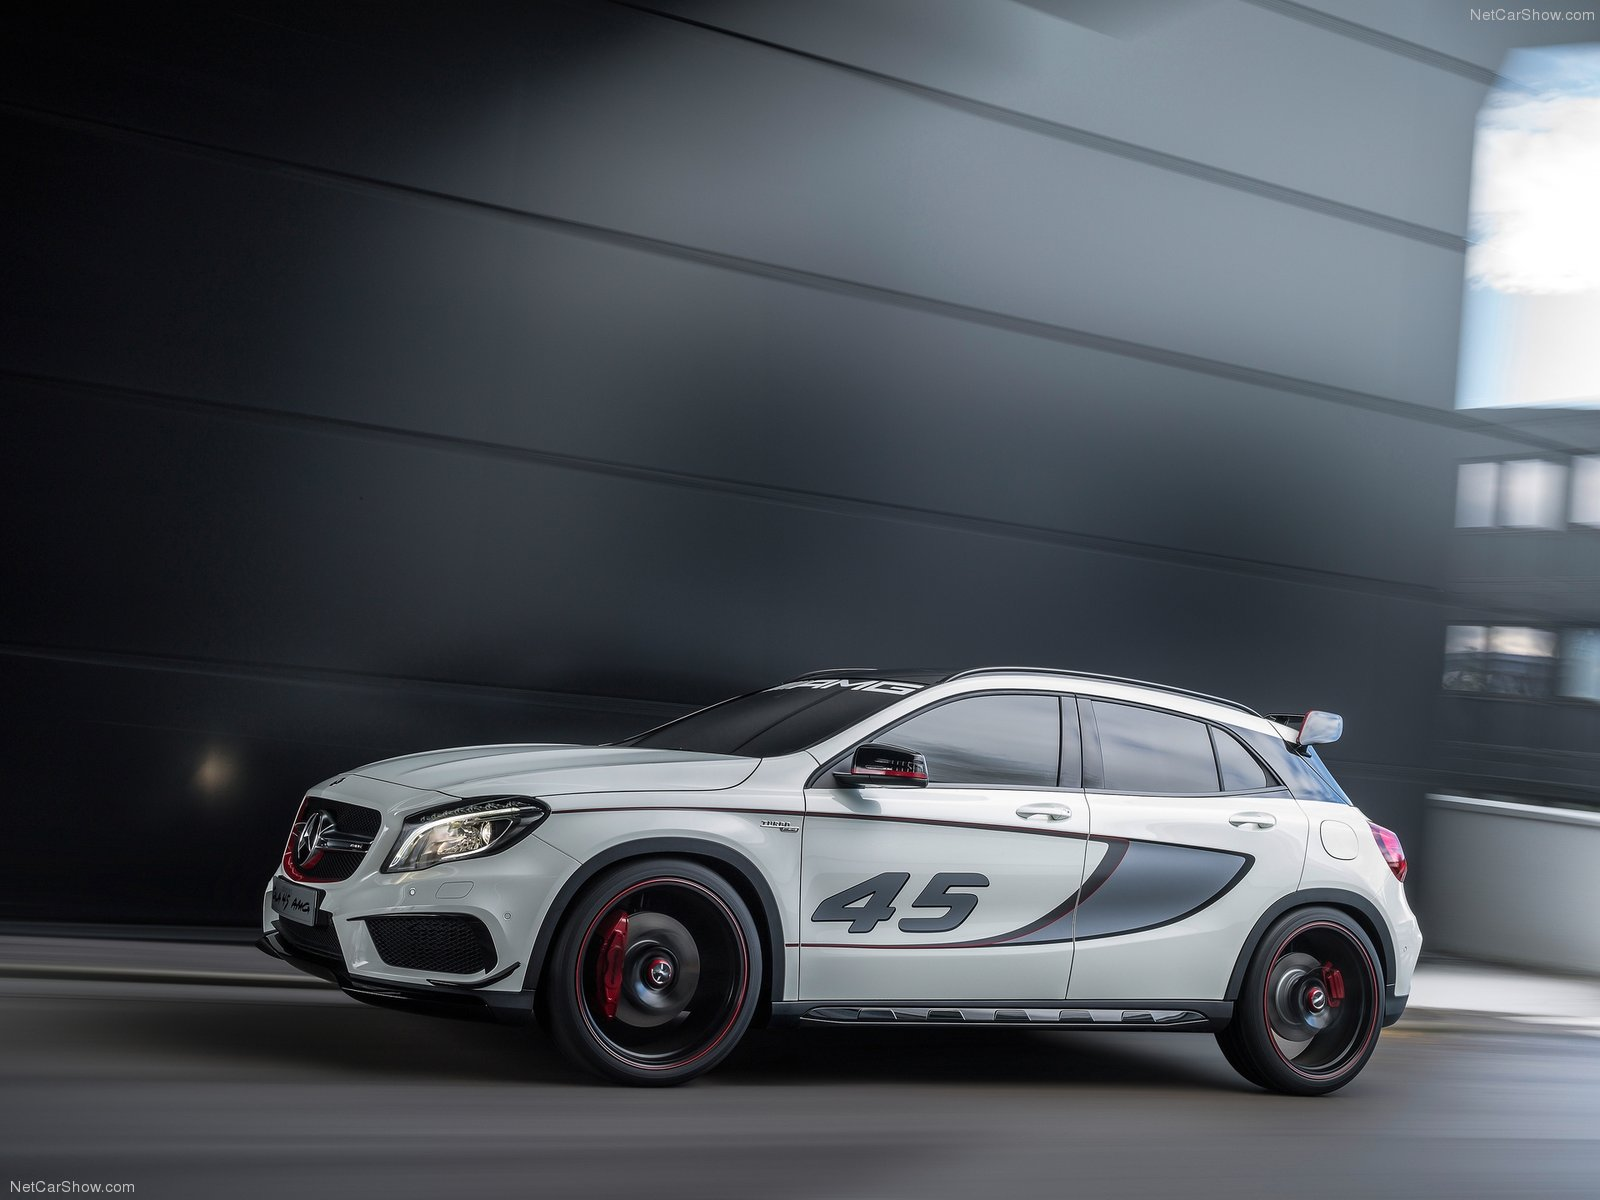 Mercedes-Benz GLA45 AMG Concept photo 107005